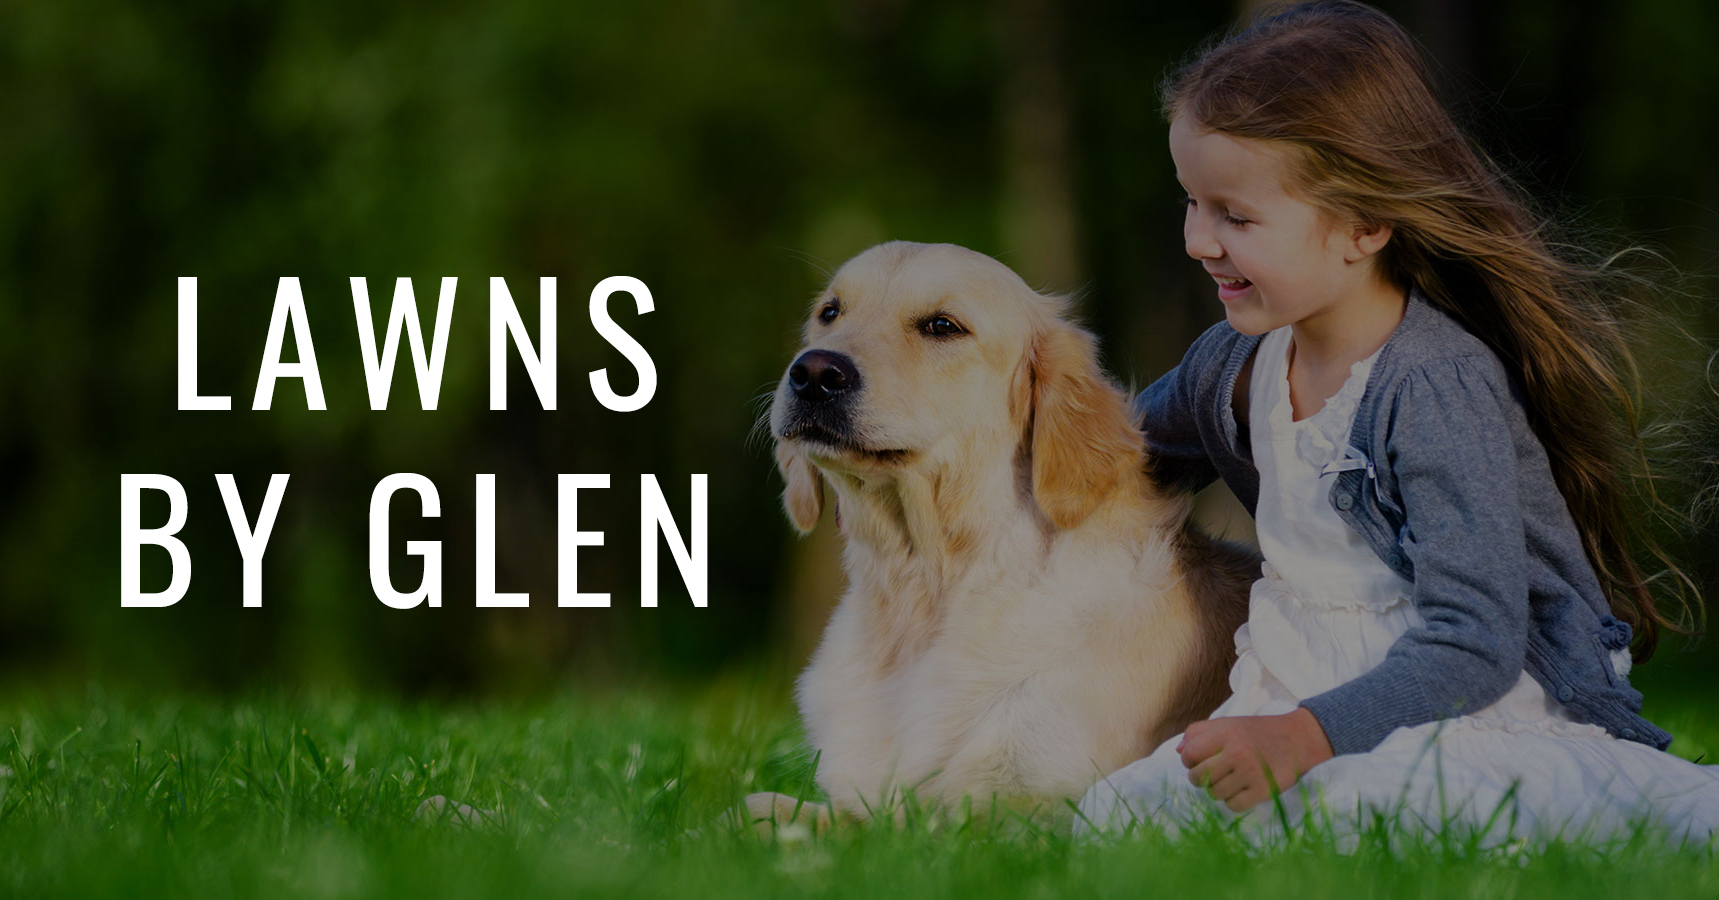 Lawns By Glen Organic Lawn Care Pest Control And More